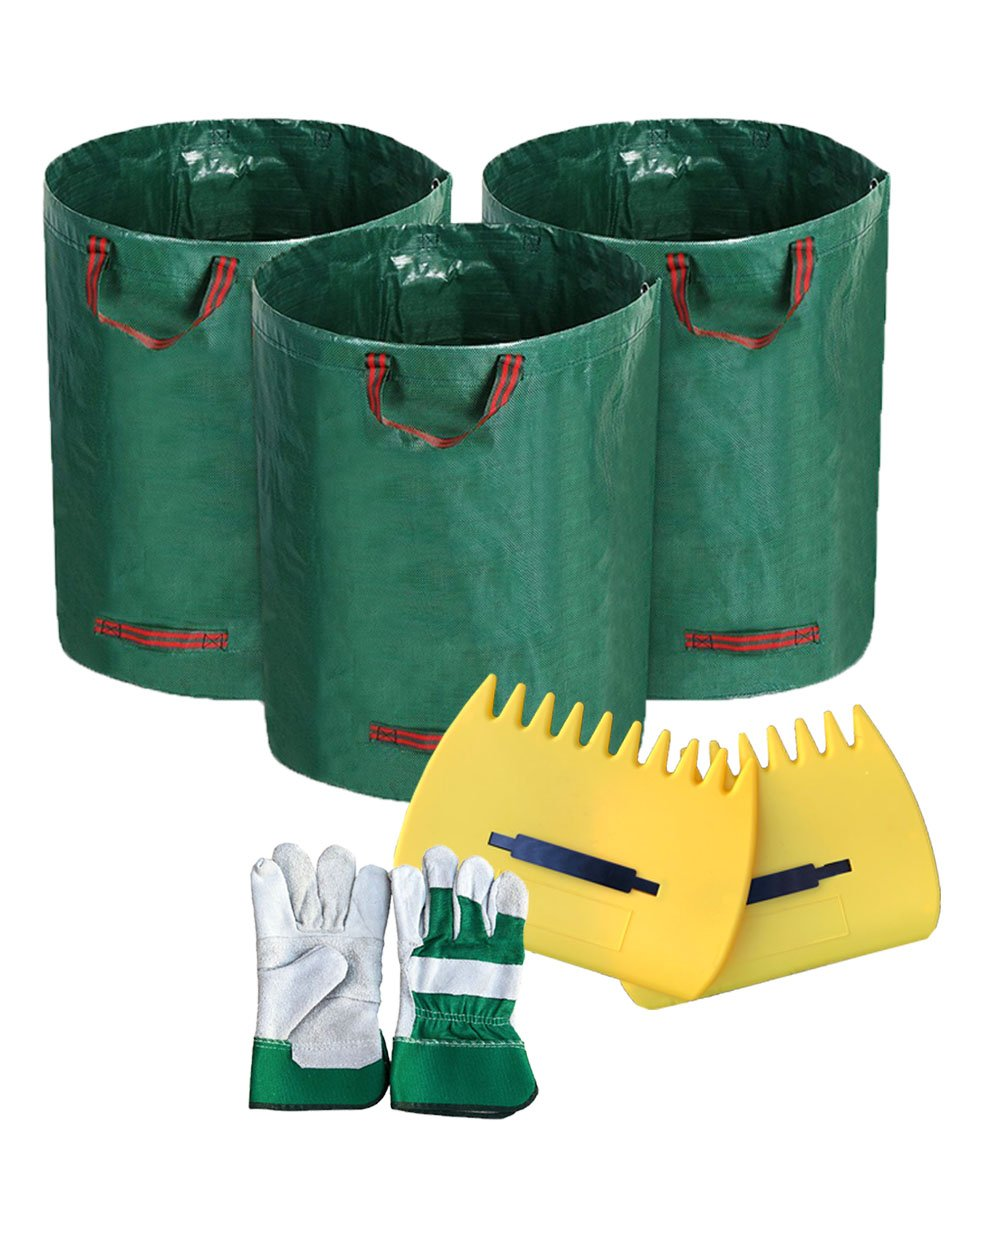 Gardening Bags Reusable and Collapsible Lawn Leaf Container for Leaves 3 Pack 72 Gallons with Leather Gloves & Leaf Scoops